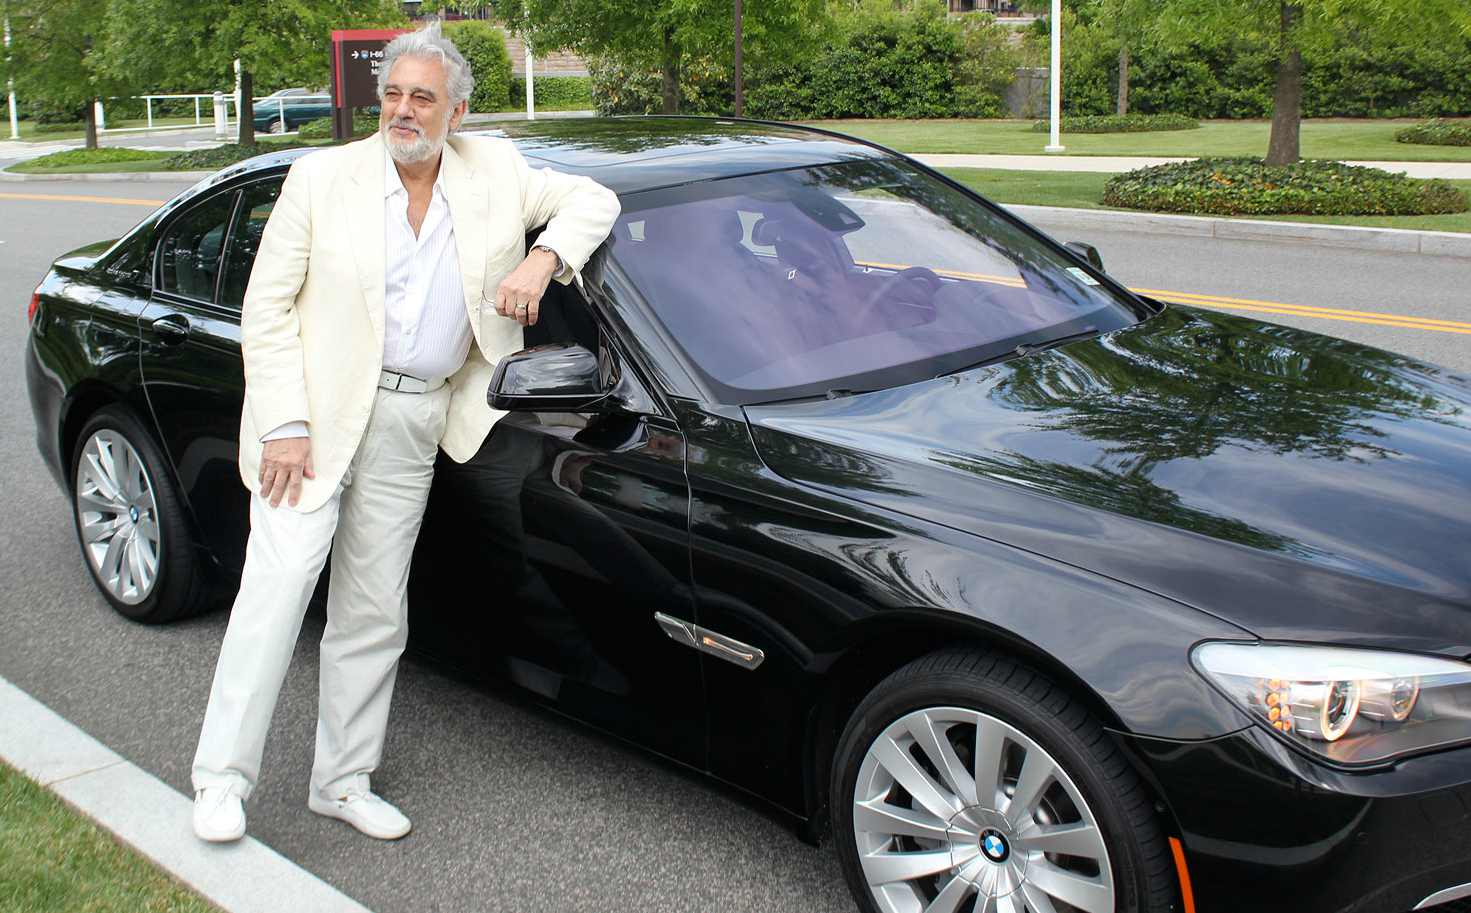 Placido Domingo posing for photo with his car